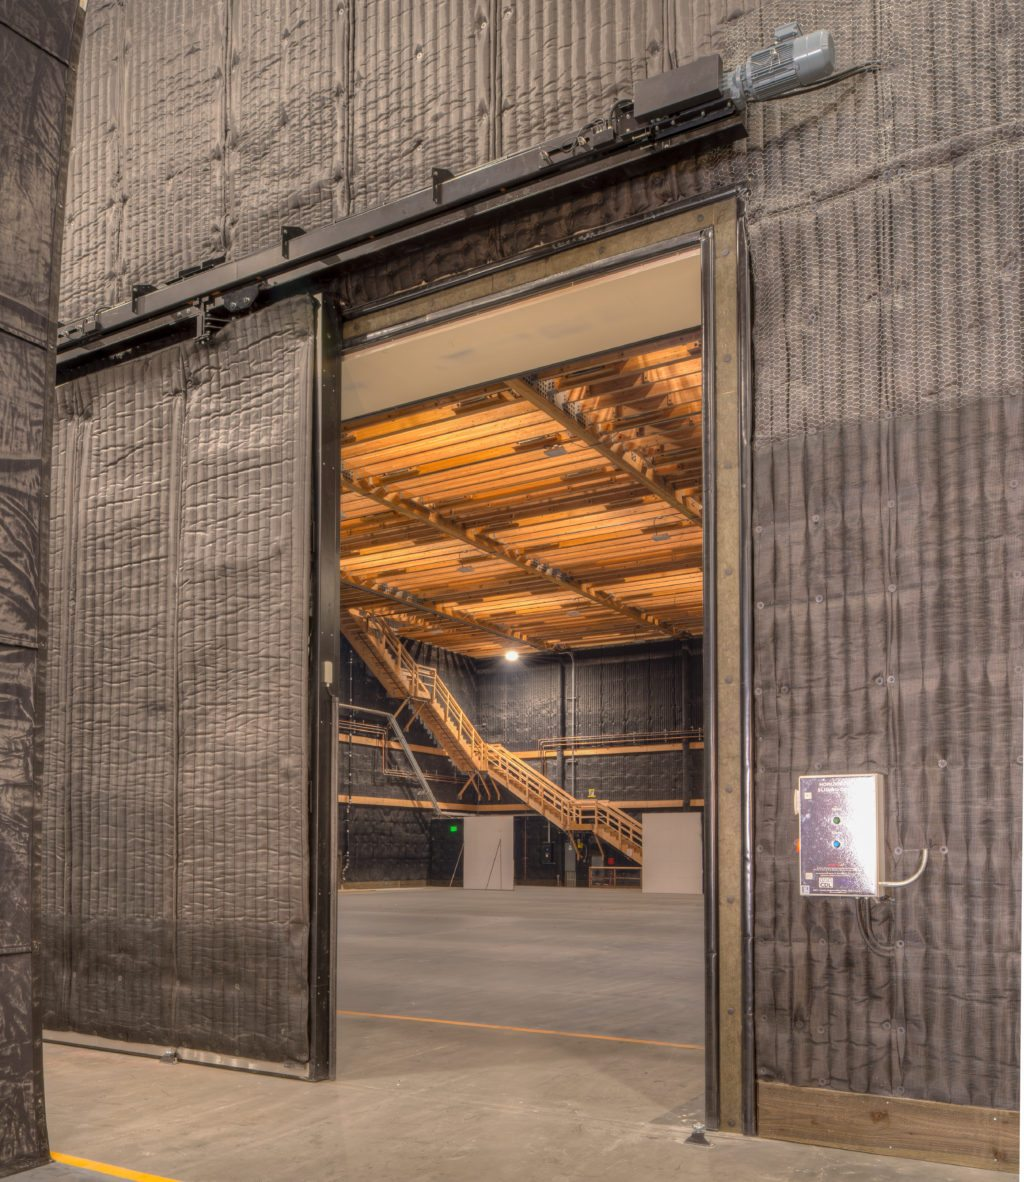 NBCU Area 51 Sound Stage and Production Interior Elephant Doors